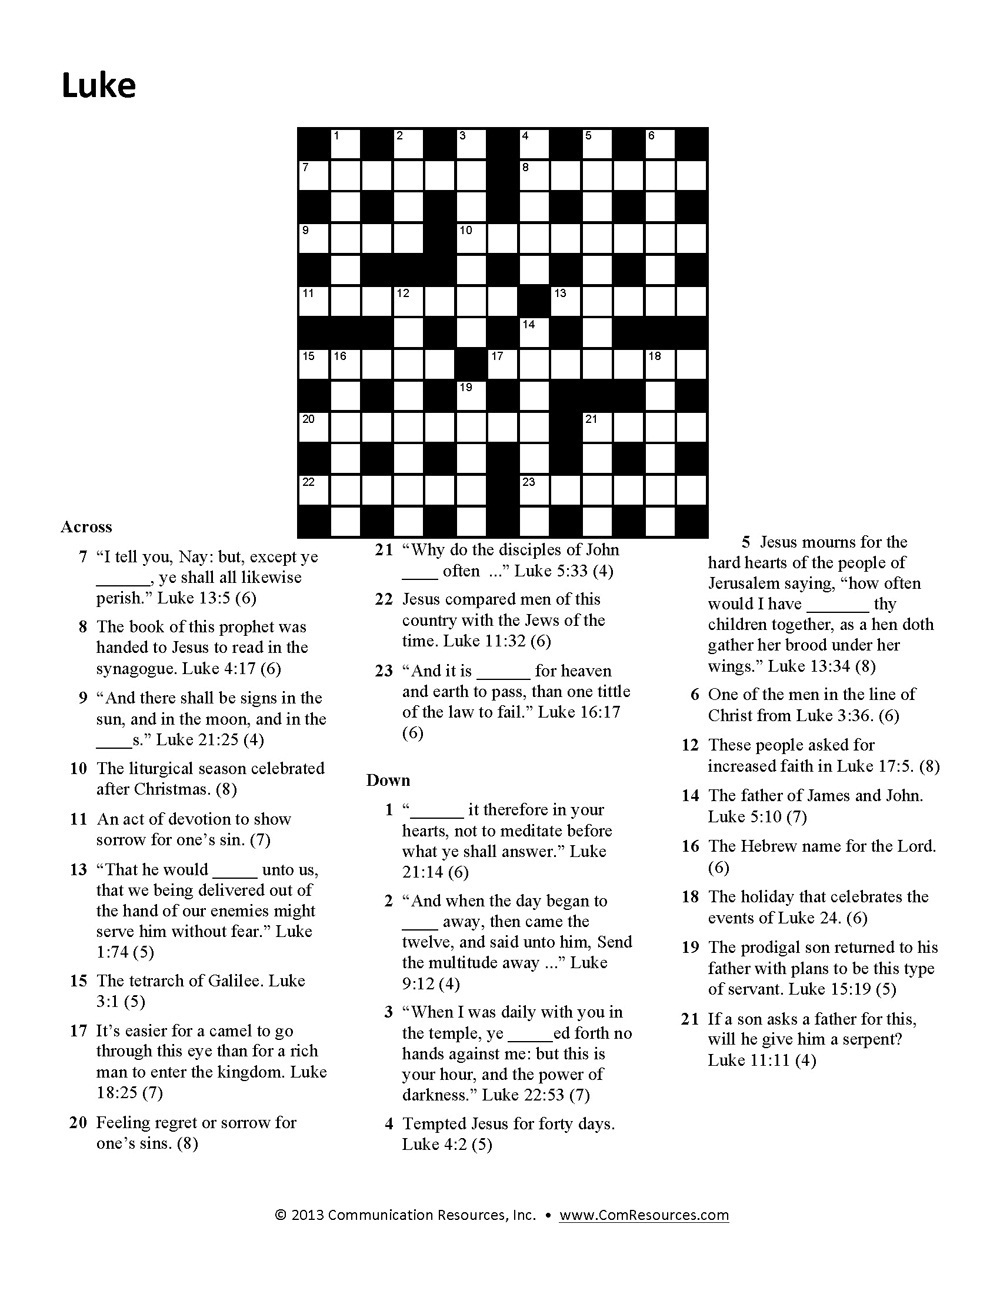 15 Fun Bible Crossword Puzzles | Kittybabylove - Fun Crossword Puzzles Printable